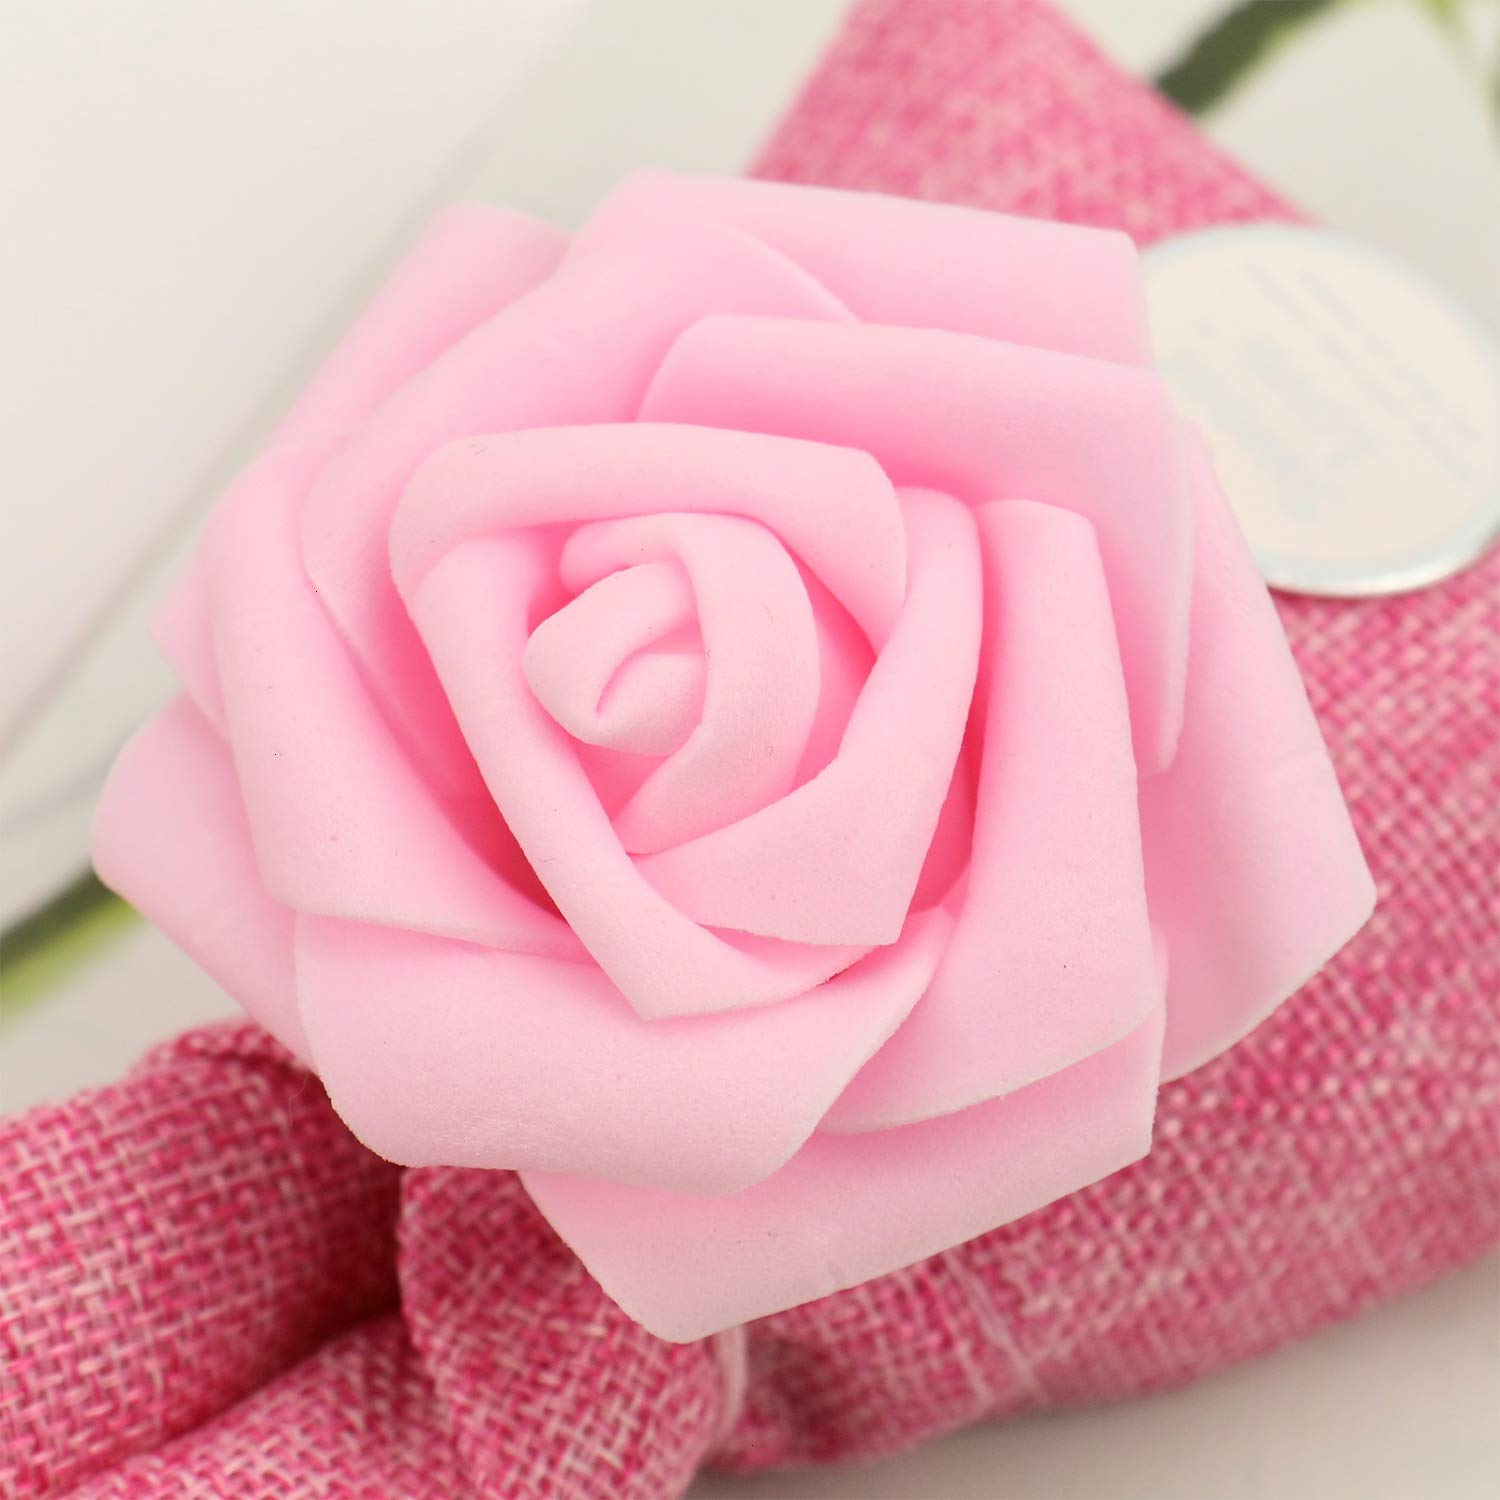 JETEHO 20 Pcs Burlap Candy Bags with Rose Flower Party Favor Gift Bags Drawstring Pouches for Wedding Bridal Shower Valentines Day Baby Shower